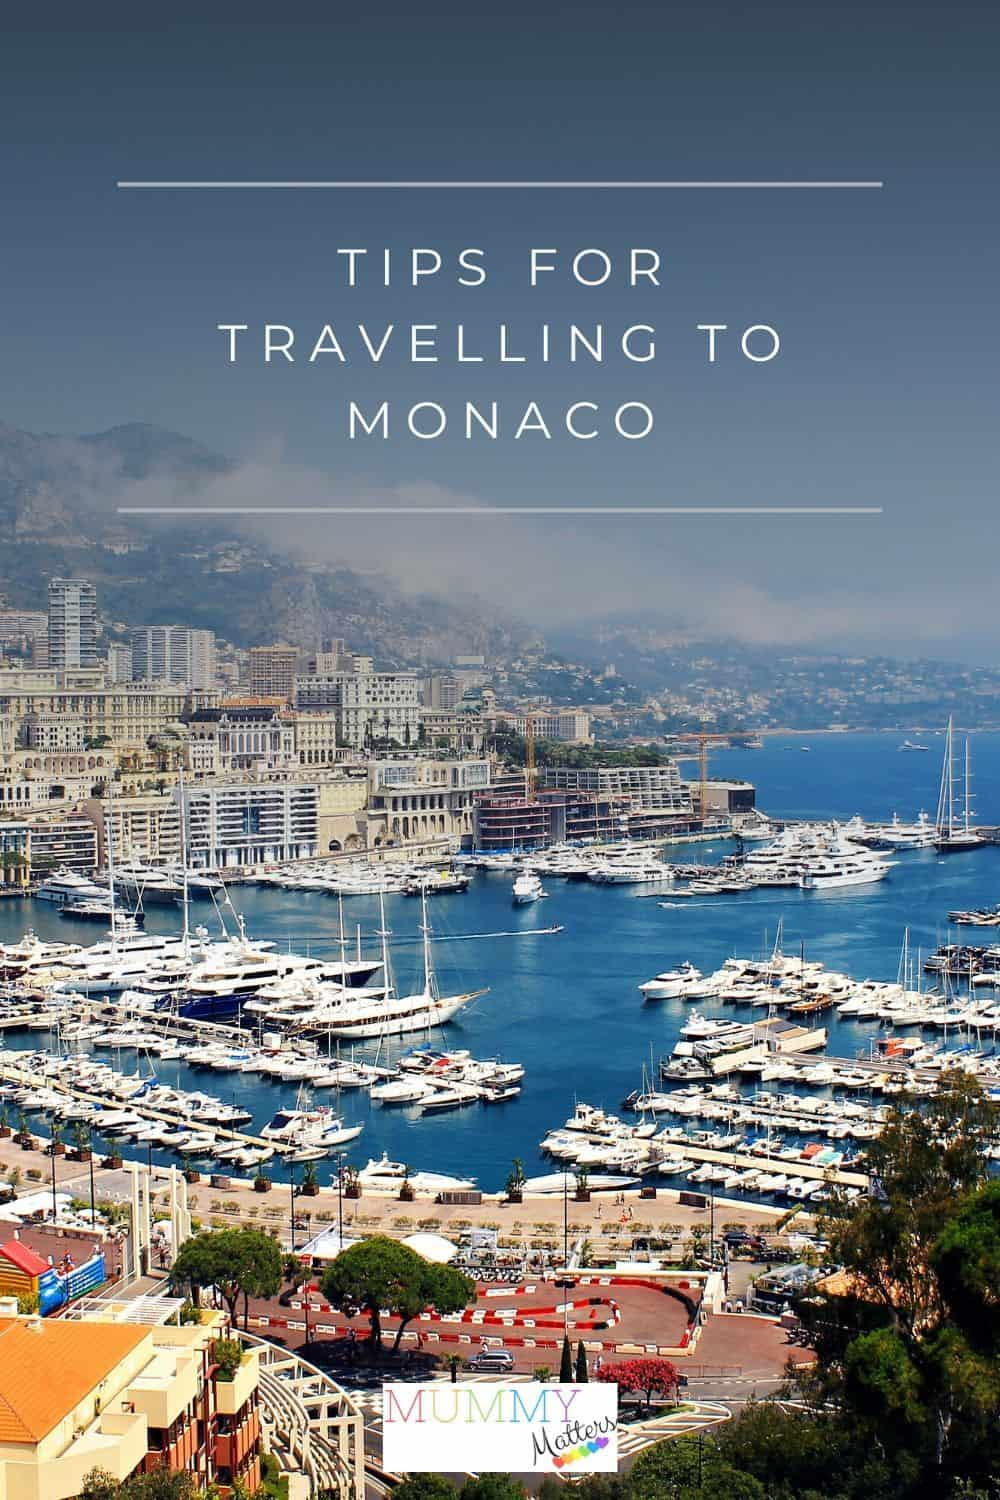 Tips for Travelling to Monaco 1